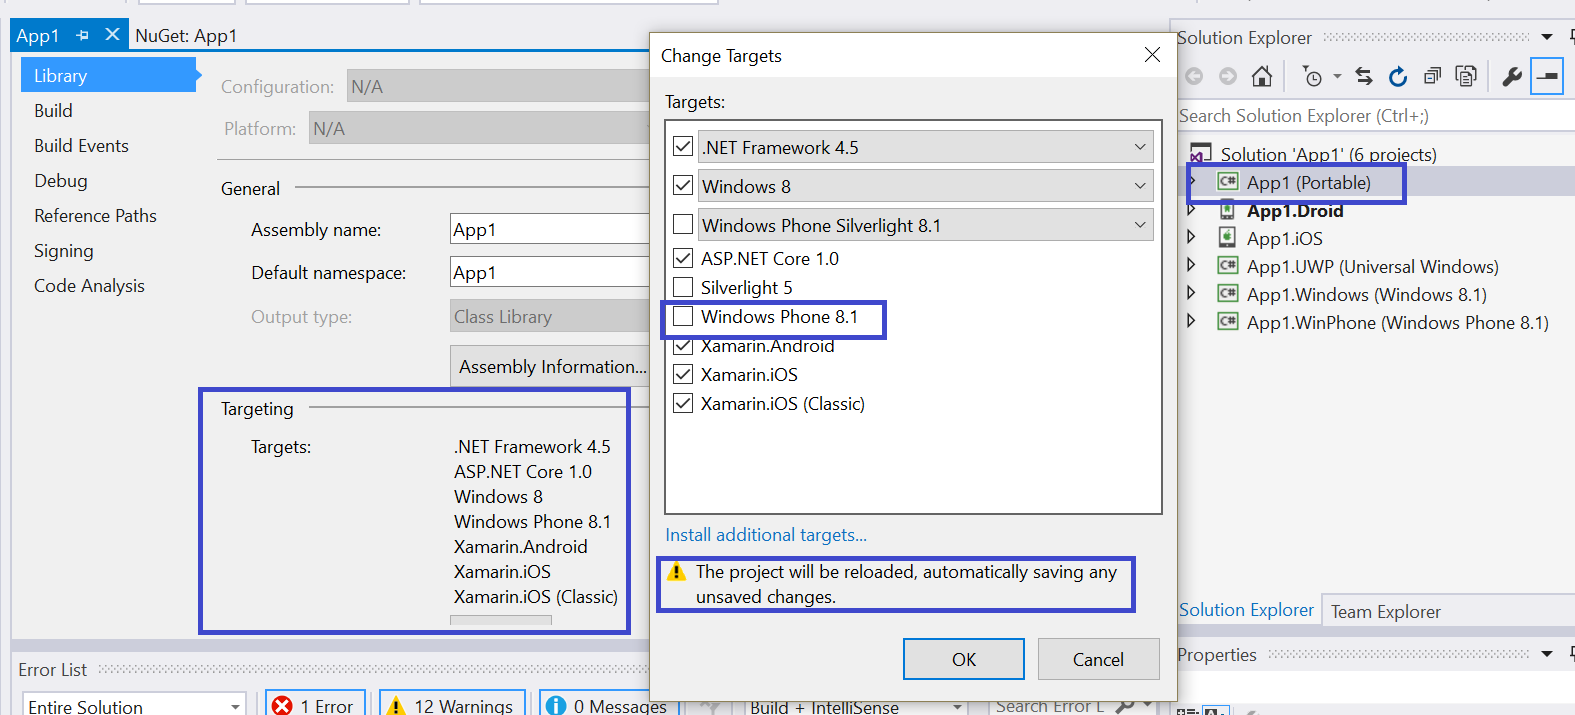 Installing ADAL NuGet package for Portable Xamarin project causes an error